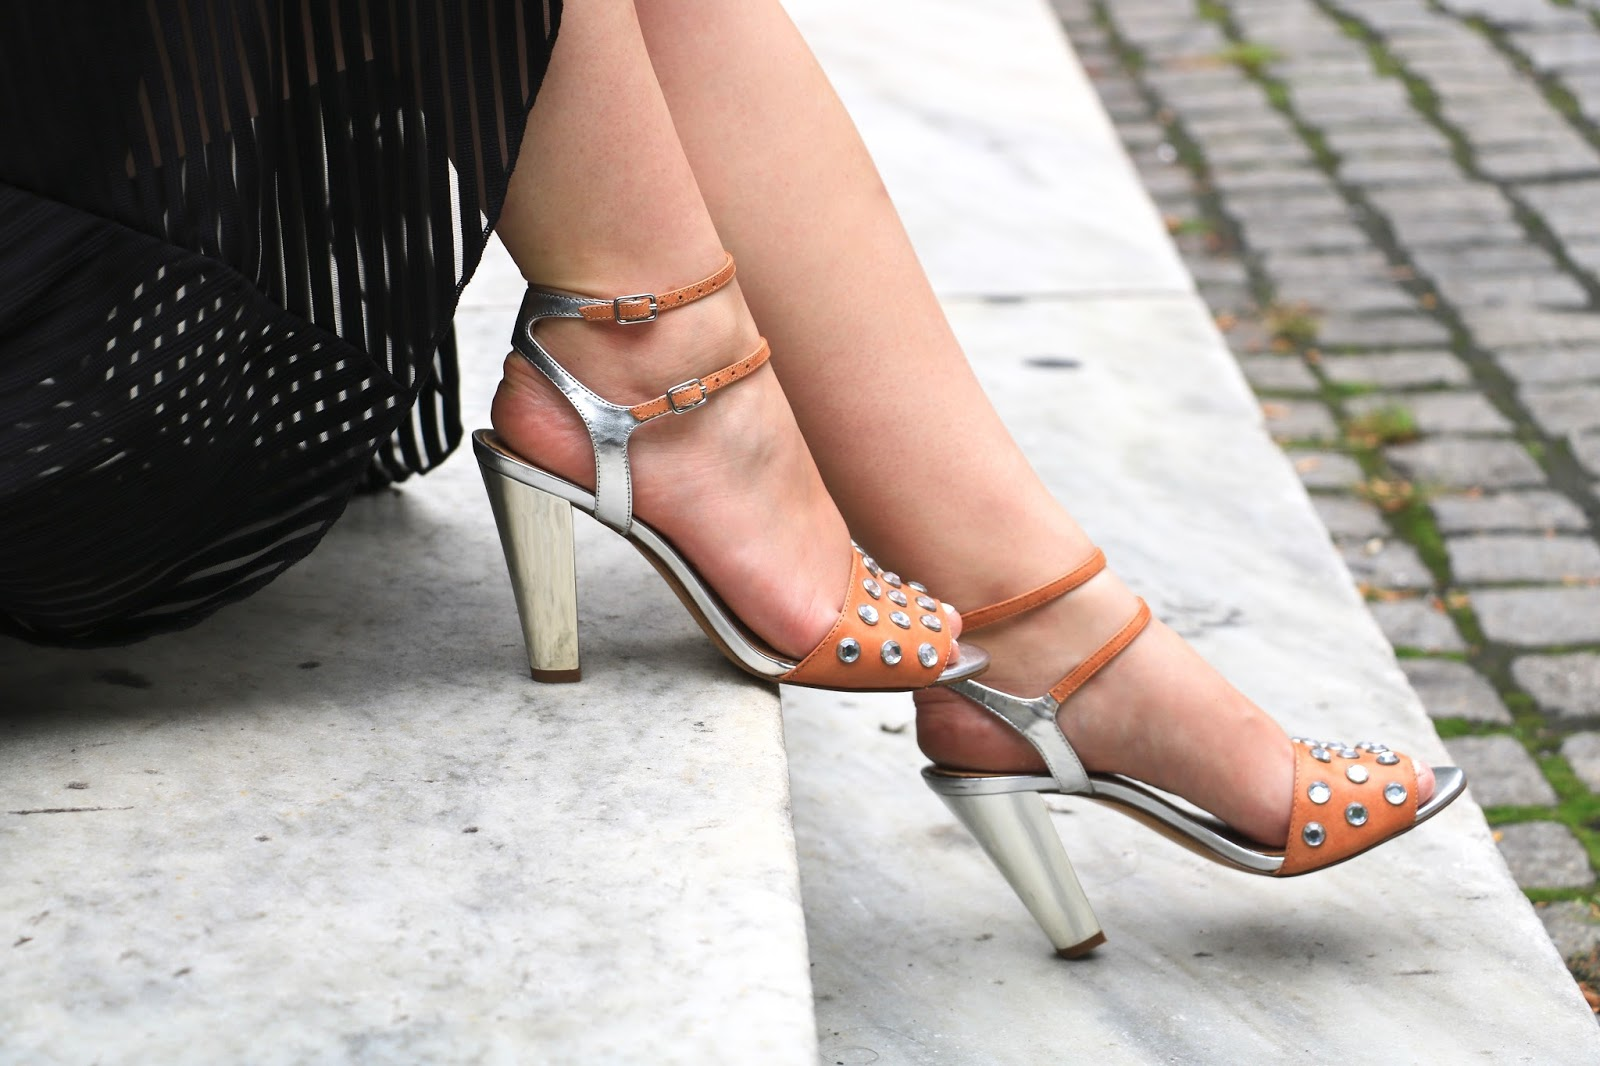 A fashion blogger wearing metallic party heels from Banana Republic